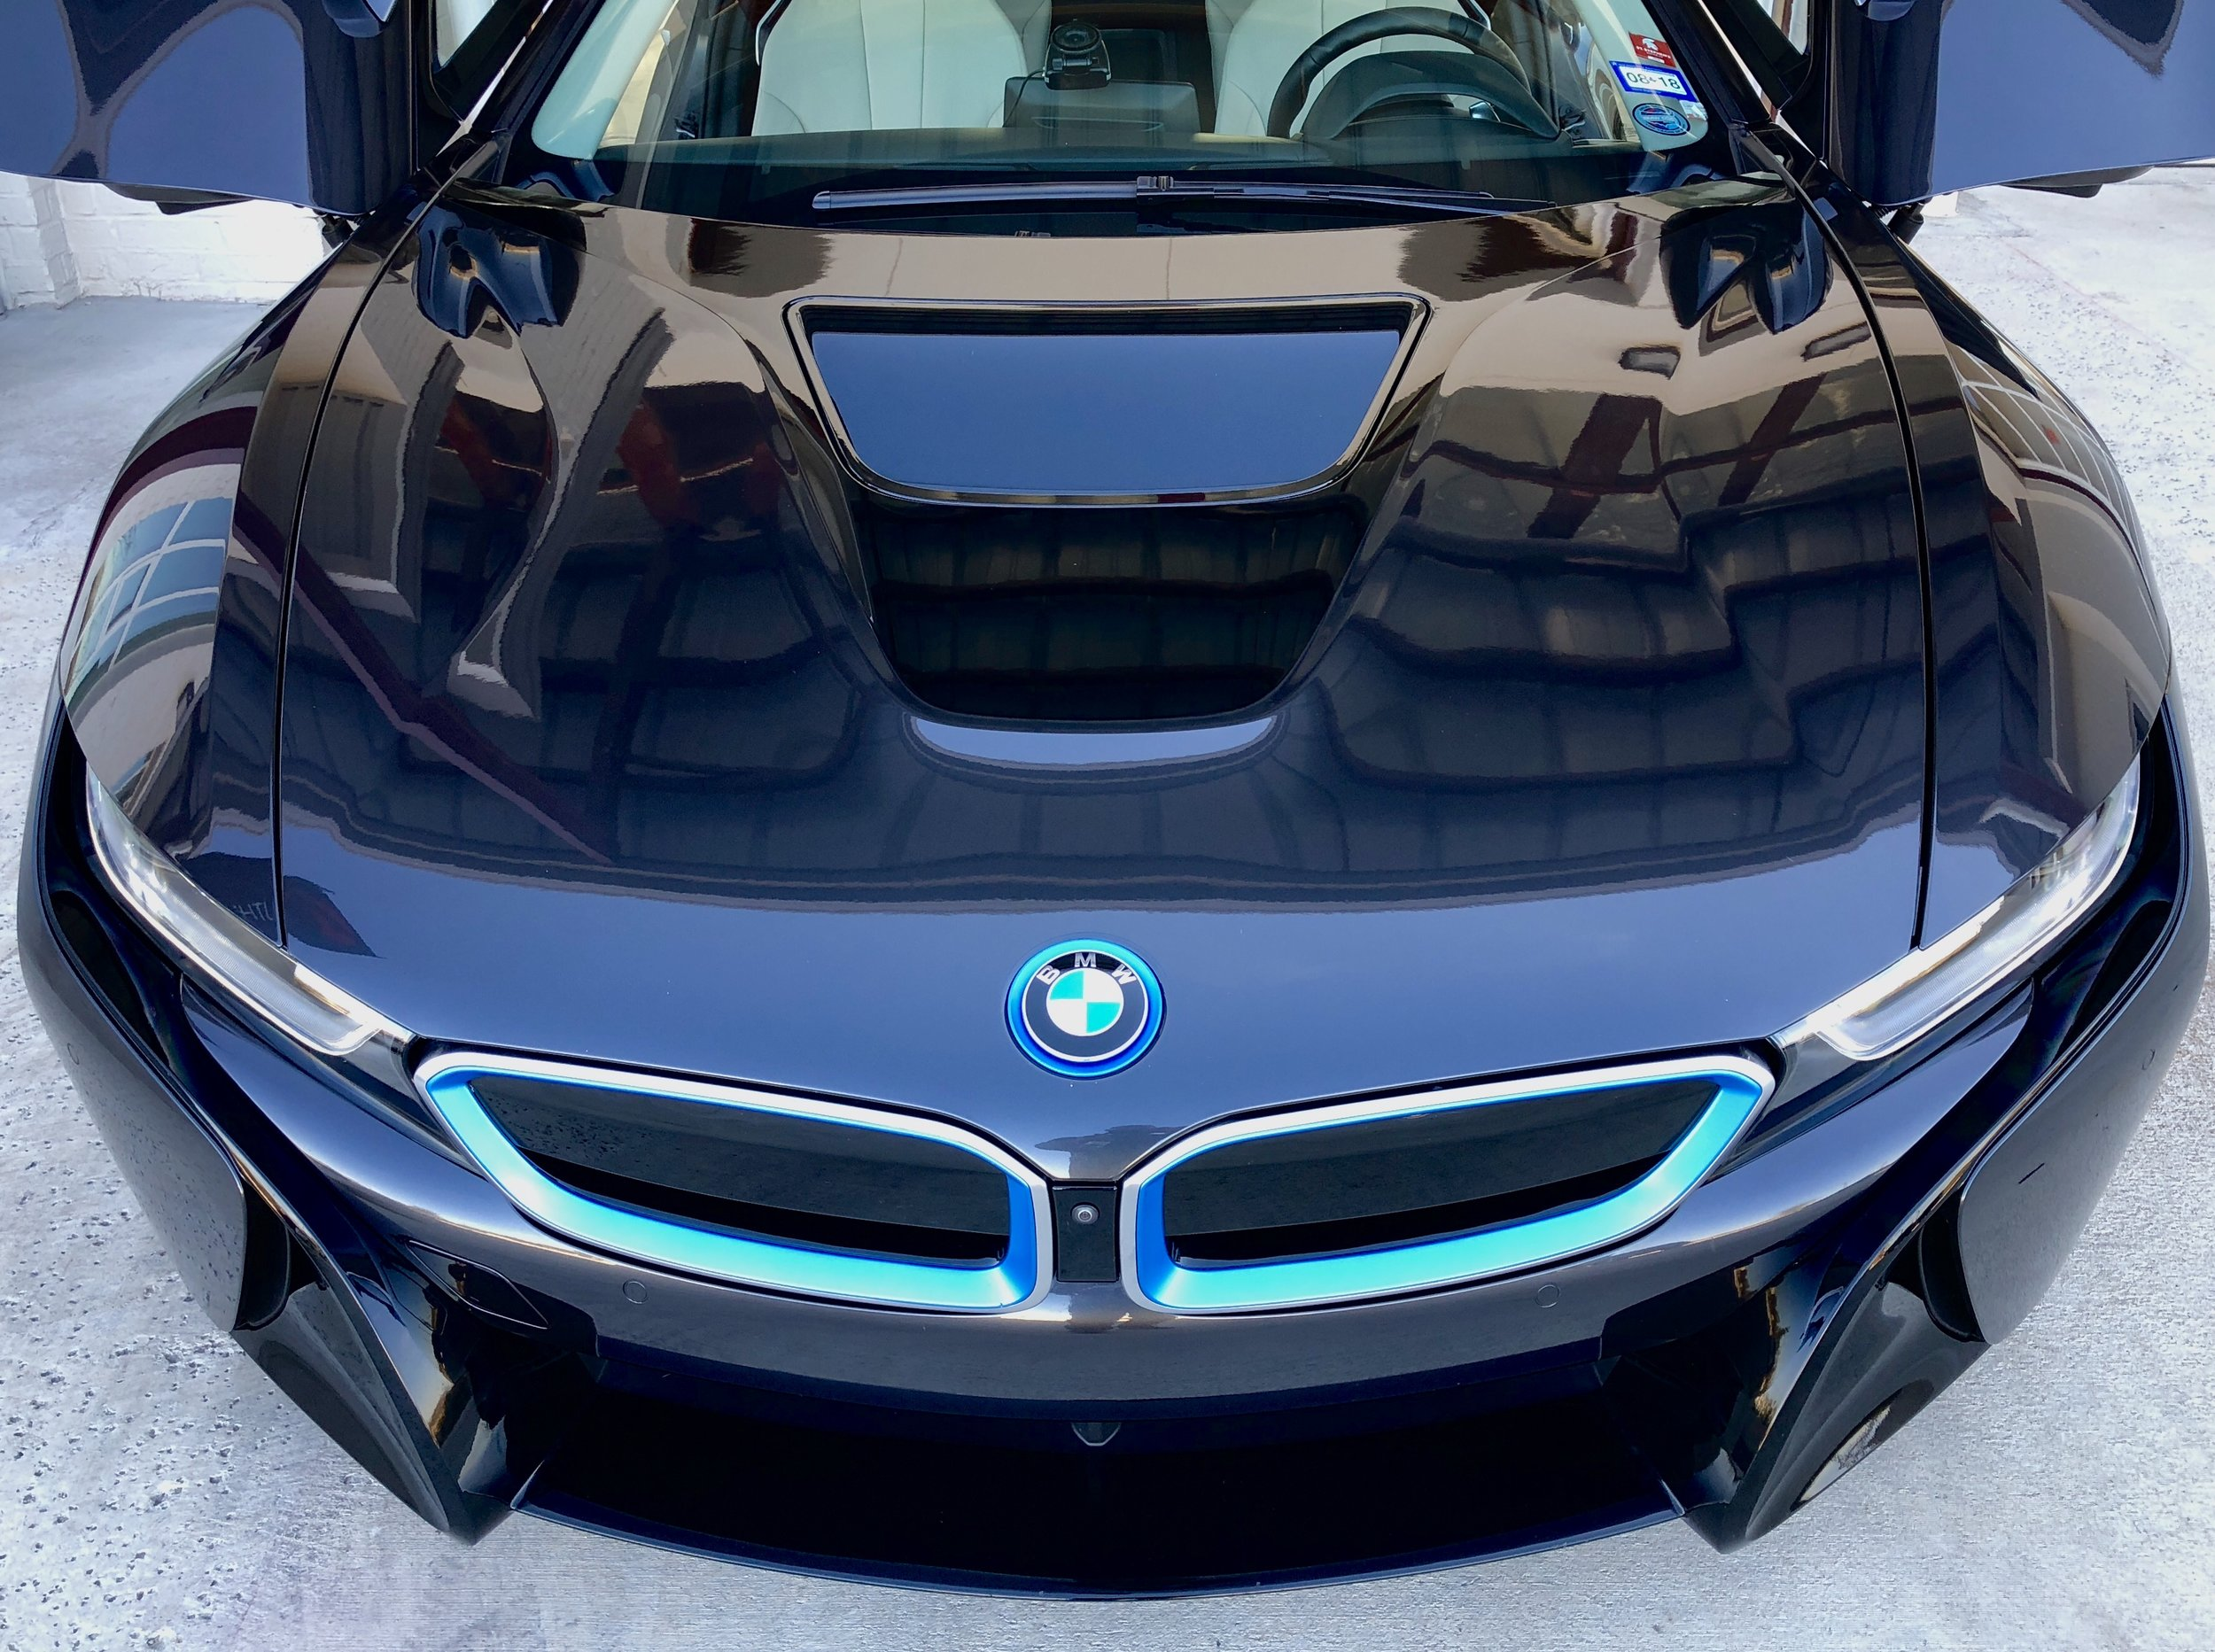 BMW i8 Paint Protection Film